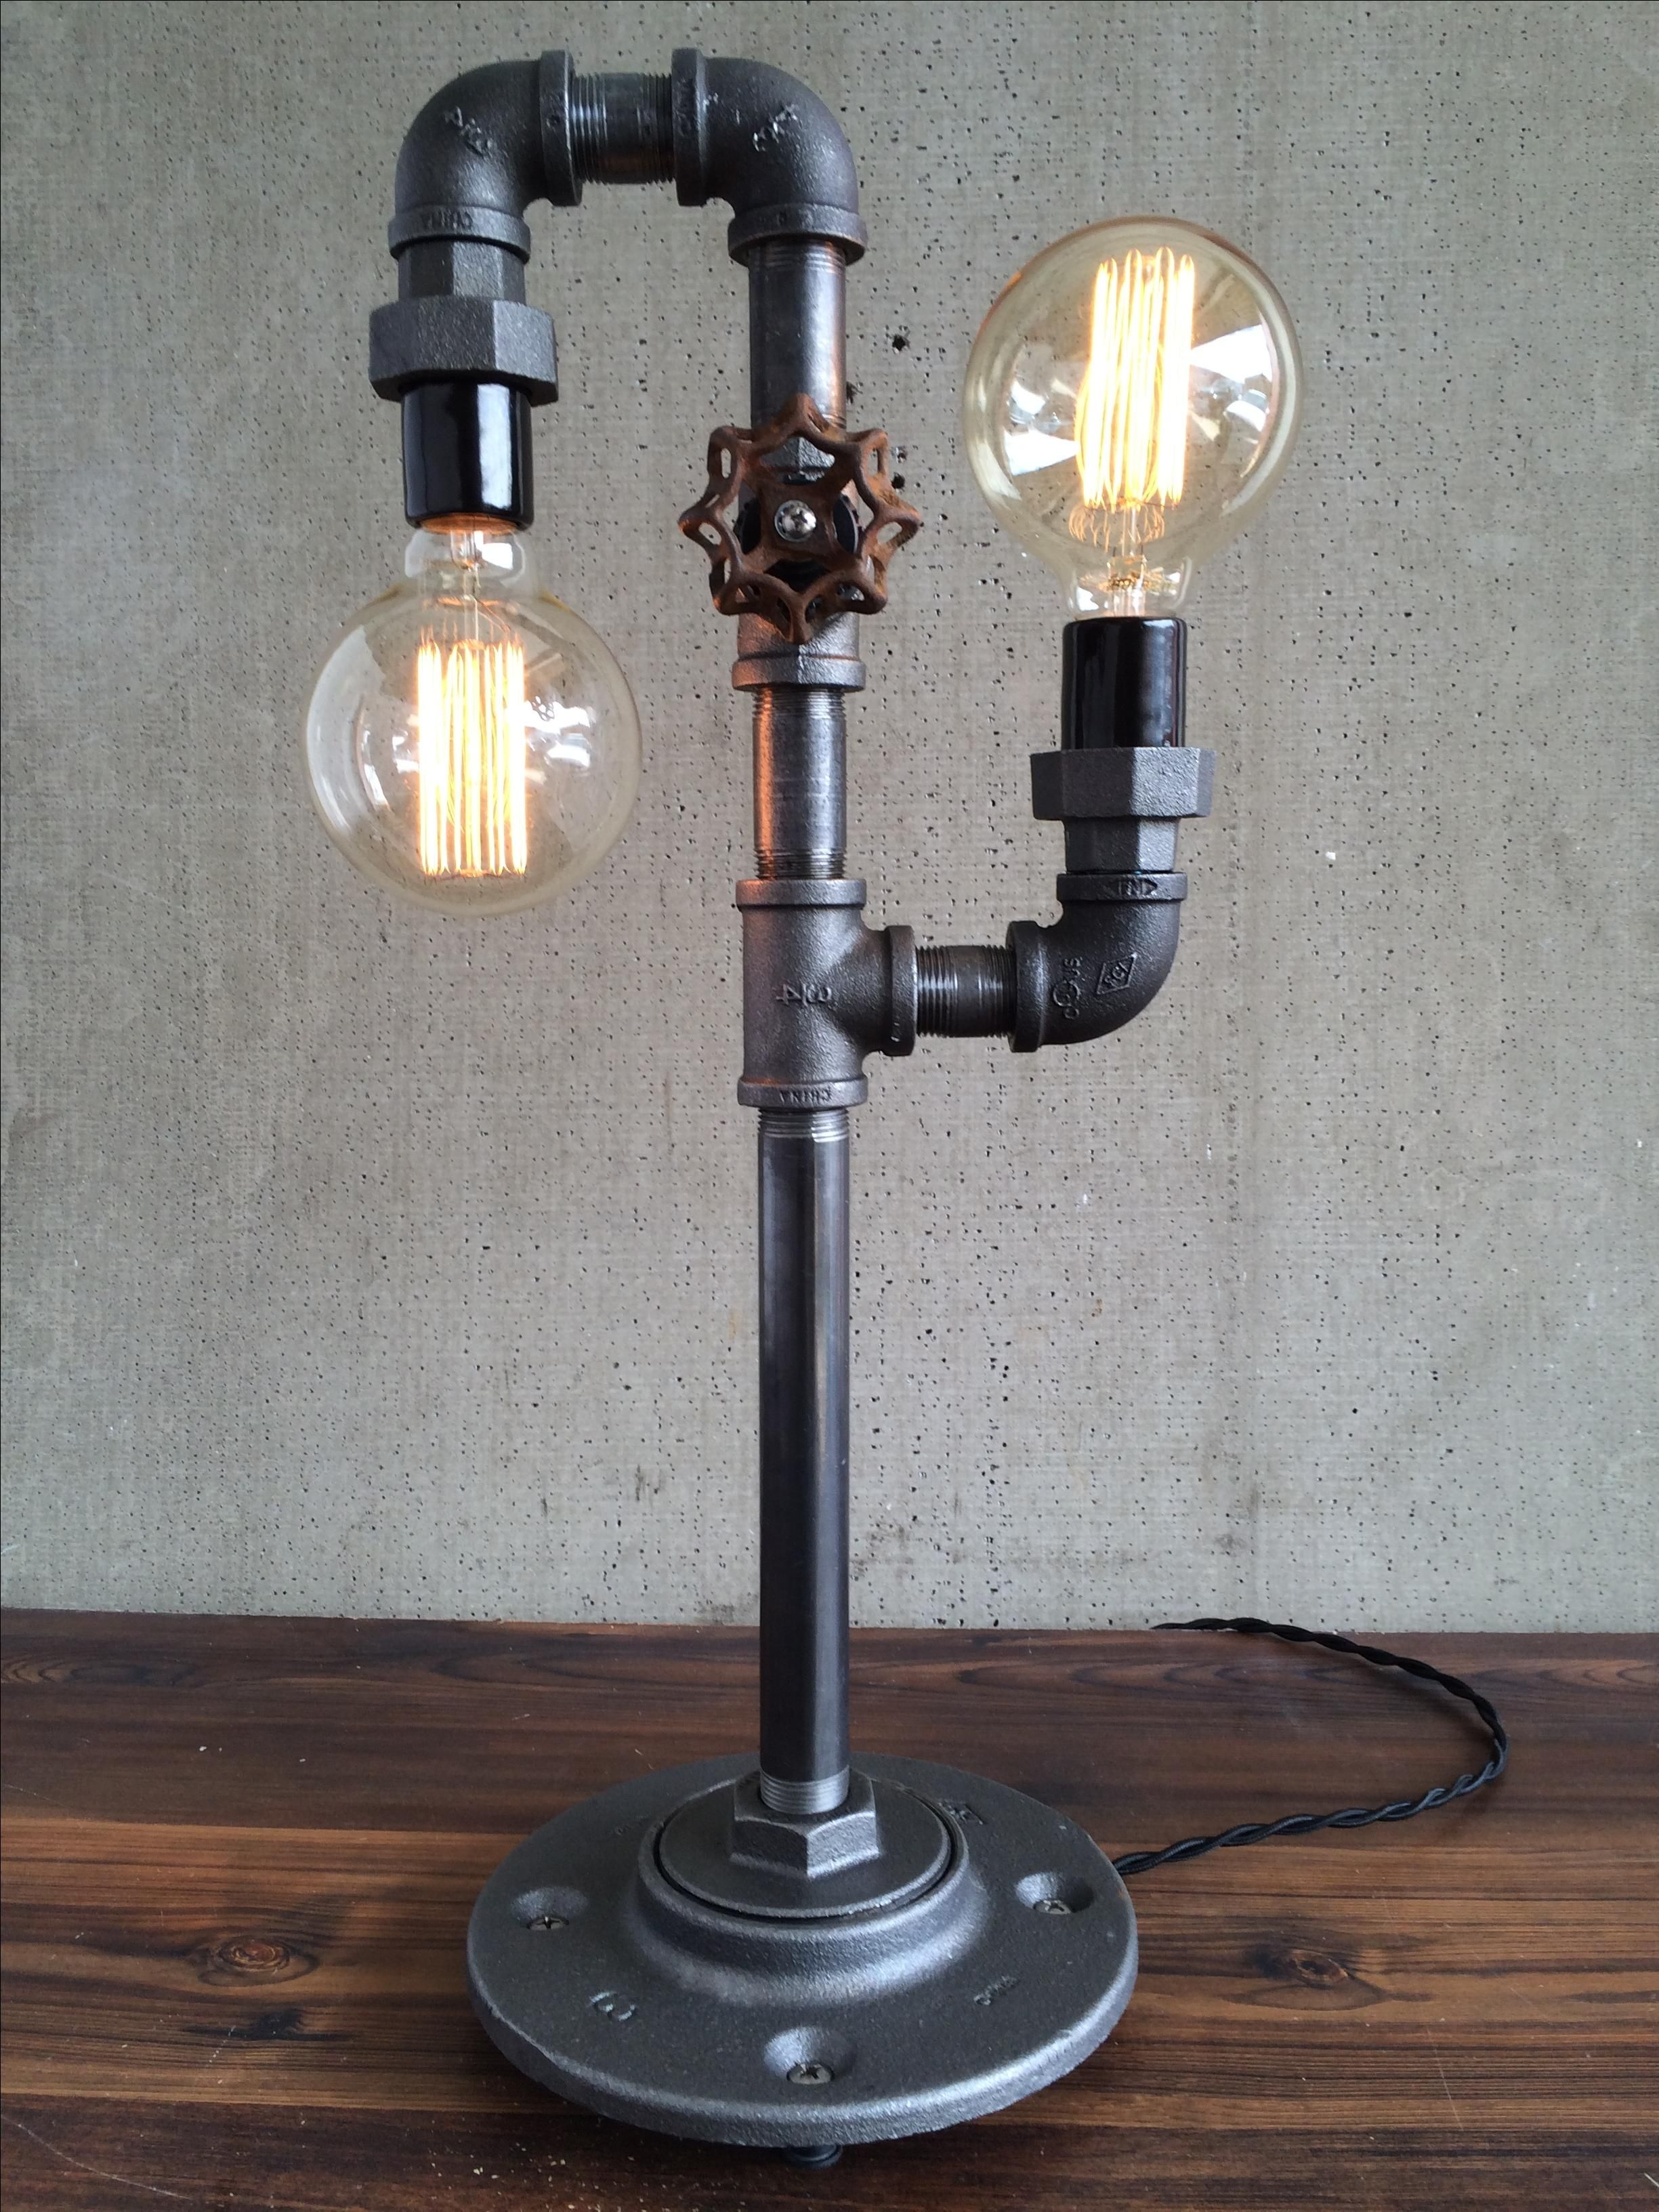 Buy a hand crafted industrial edison bulb light iron pipe table buy a hand crafted industrial edison bulb light iron pipe table lamp made to order from peared creation custommade geotapseo Choice Image